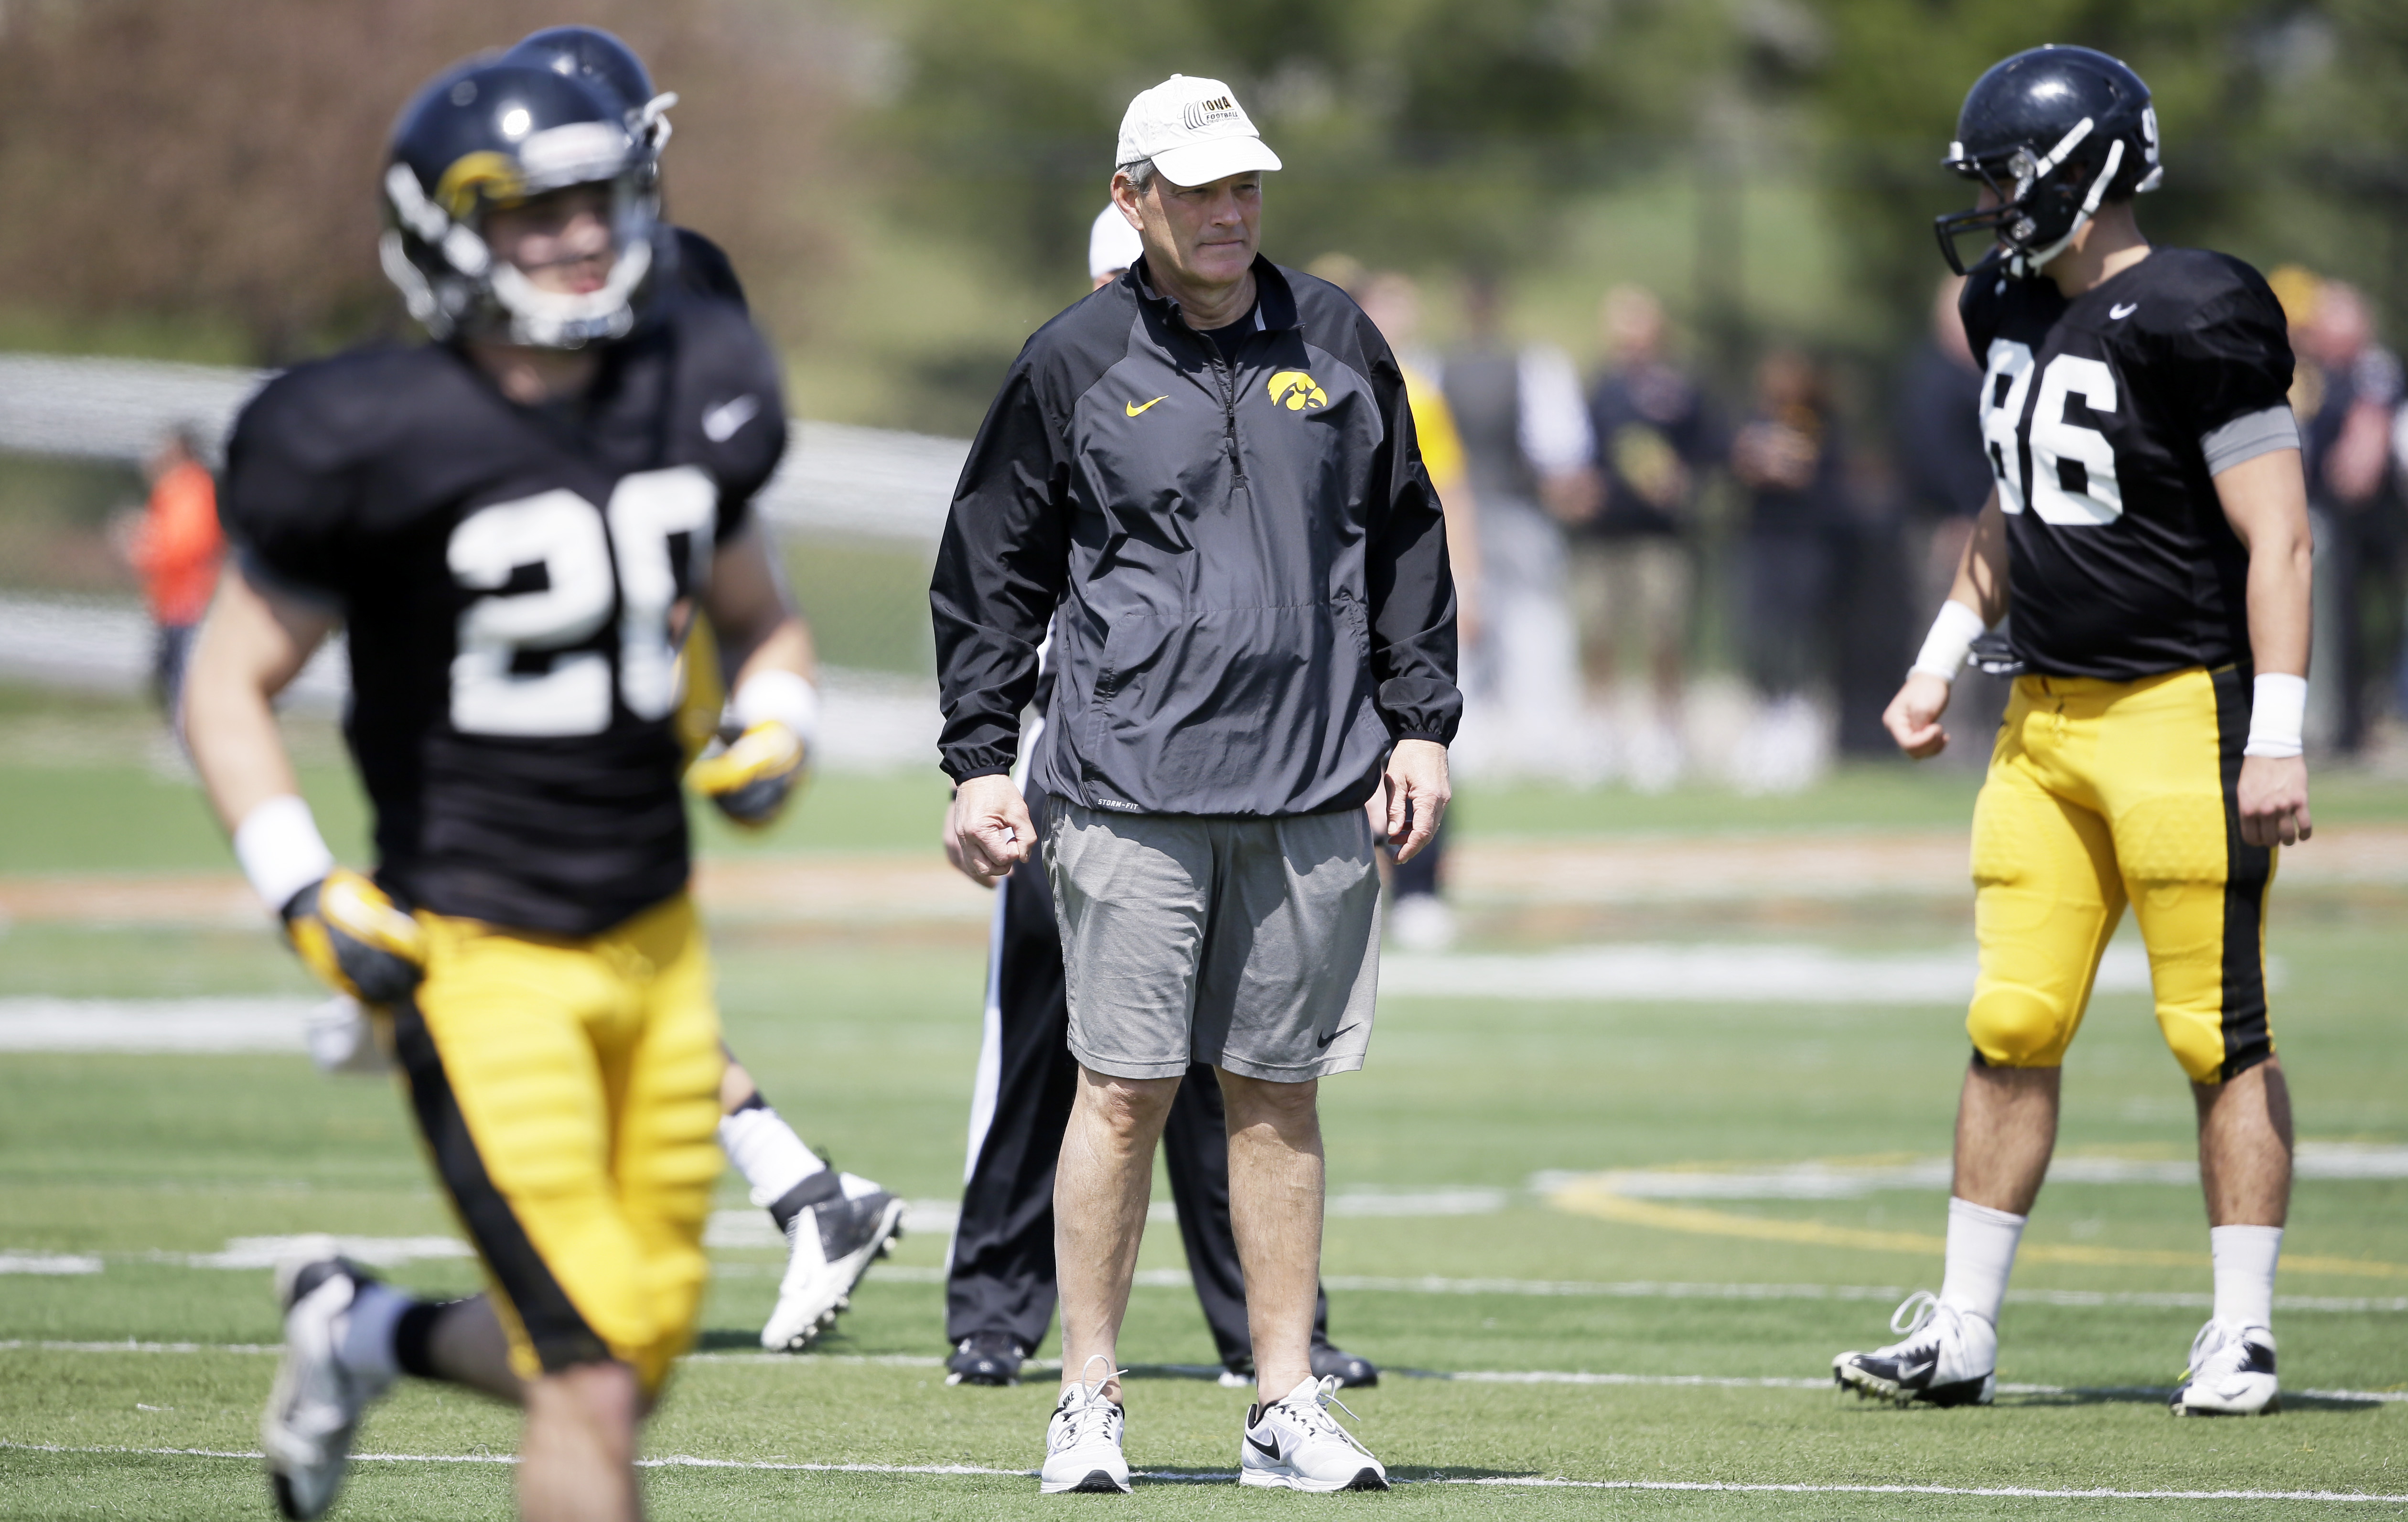 FILE - In this April 11, 2015, file photo, Iowa coach Kirk Ferentz watches his team during NCAA college football practice in West Des Moines, Iowa. Ferentz has made a ton of changes this offseason, from introducing alternate uniforms to switching practice